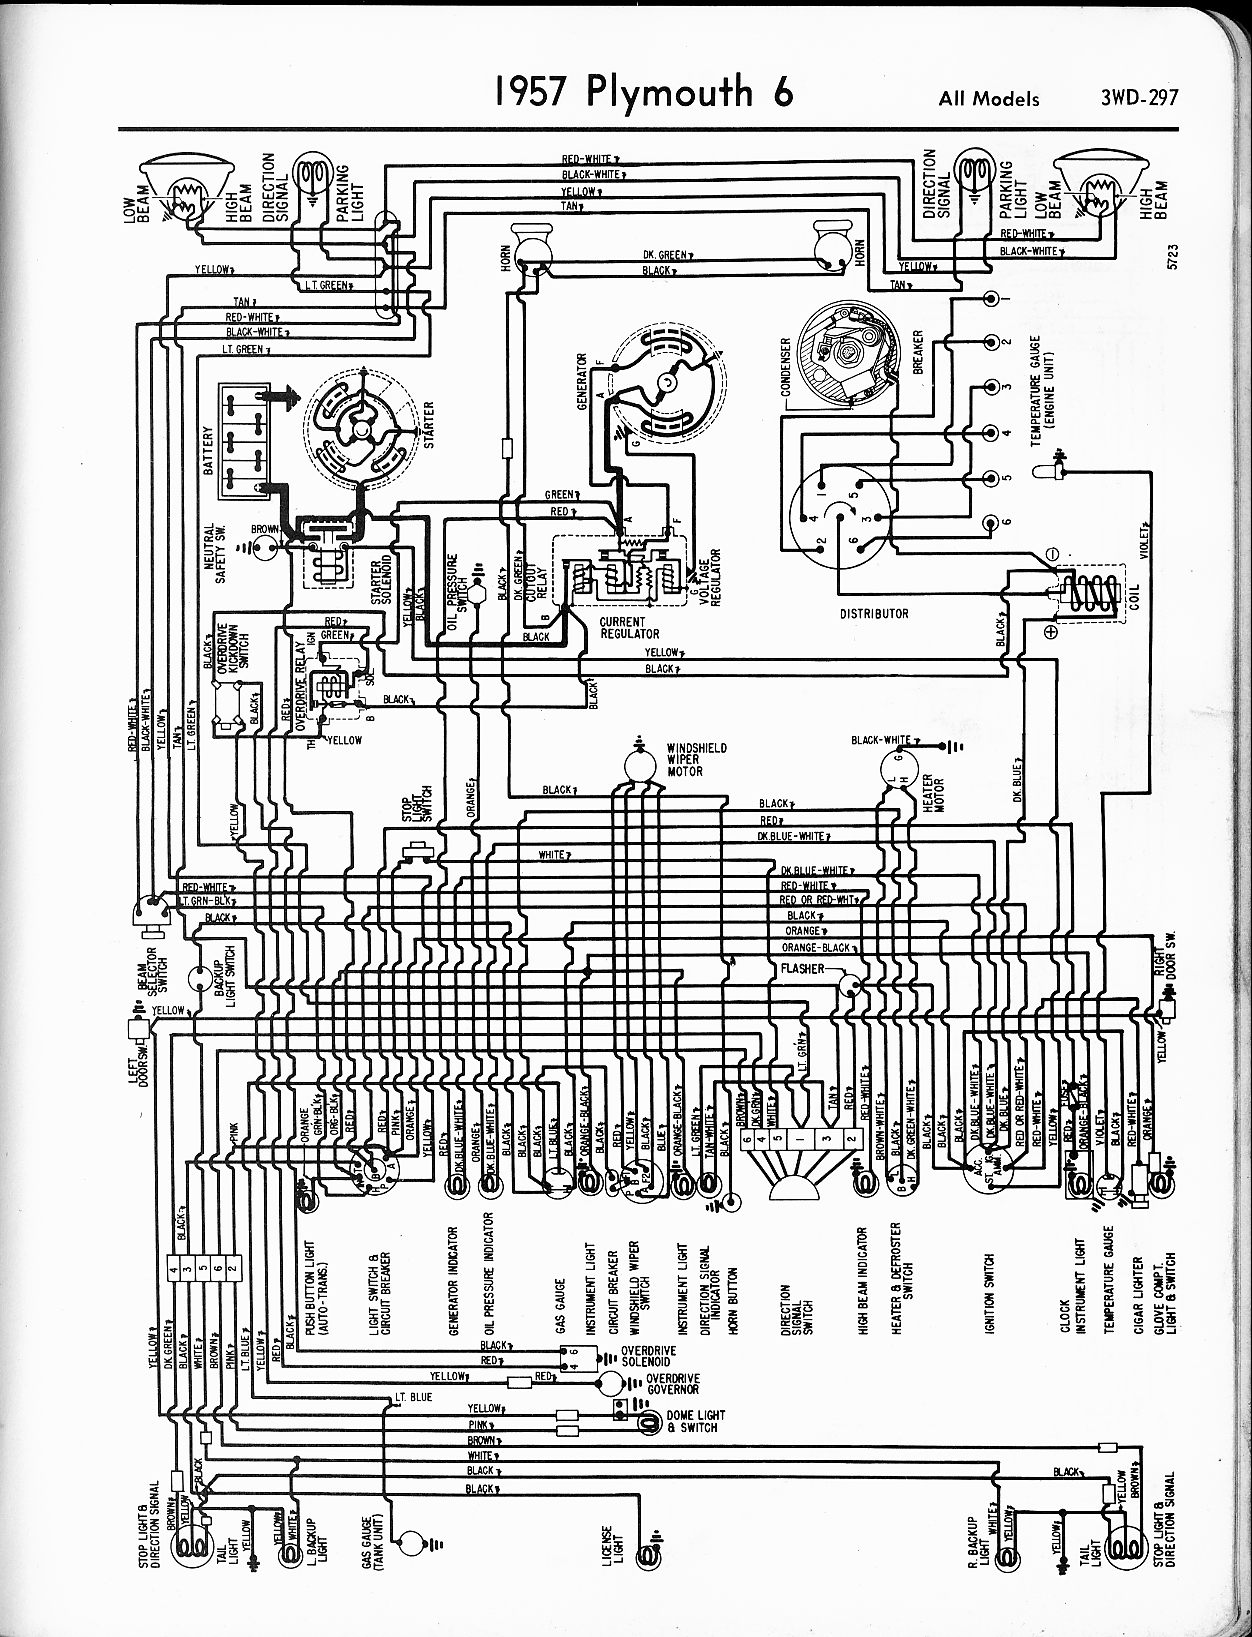 satellite wiring diagram ponents with 1967 Plymouth Satellite Clock Wiring Diagrams on Tv Surround Sound Wiring Diagram also Satellite Parts And Accessories moreover Subwoofer Lifier Circuit Diagram Pdf further Ground Control Station Diagram in addition 1967 Plymouth Satellite Clock Wiring Diagrams.